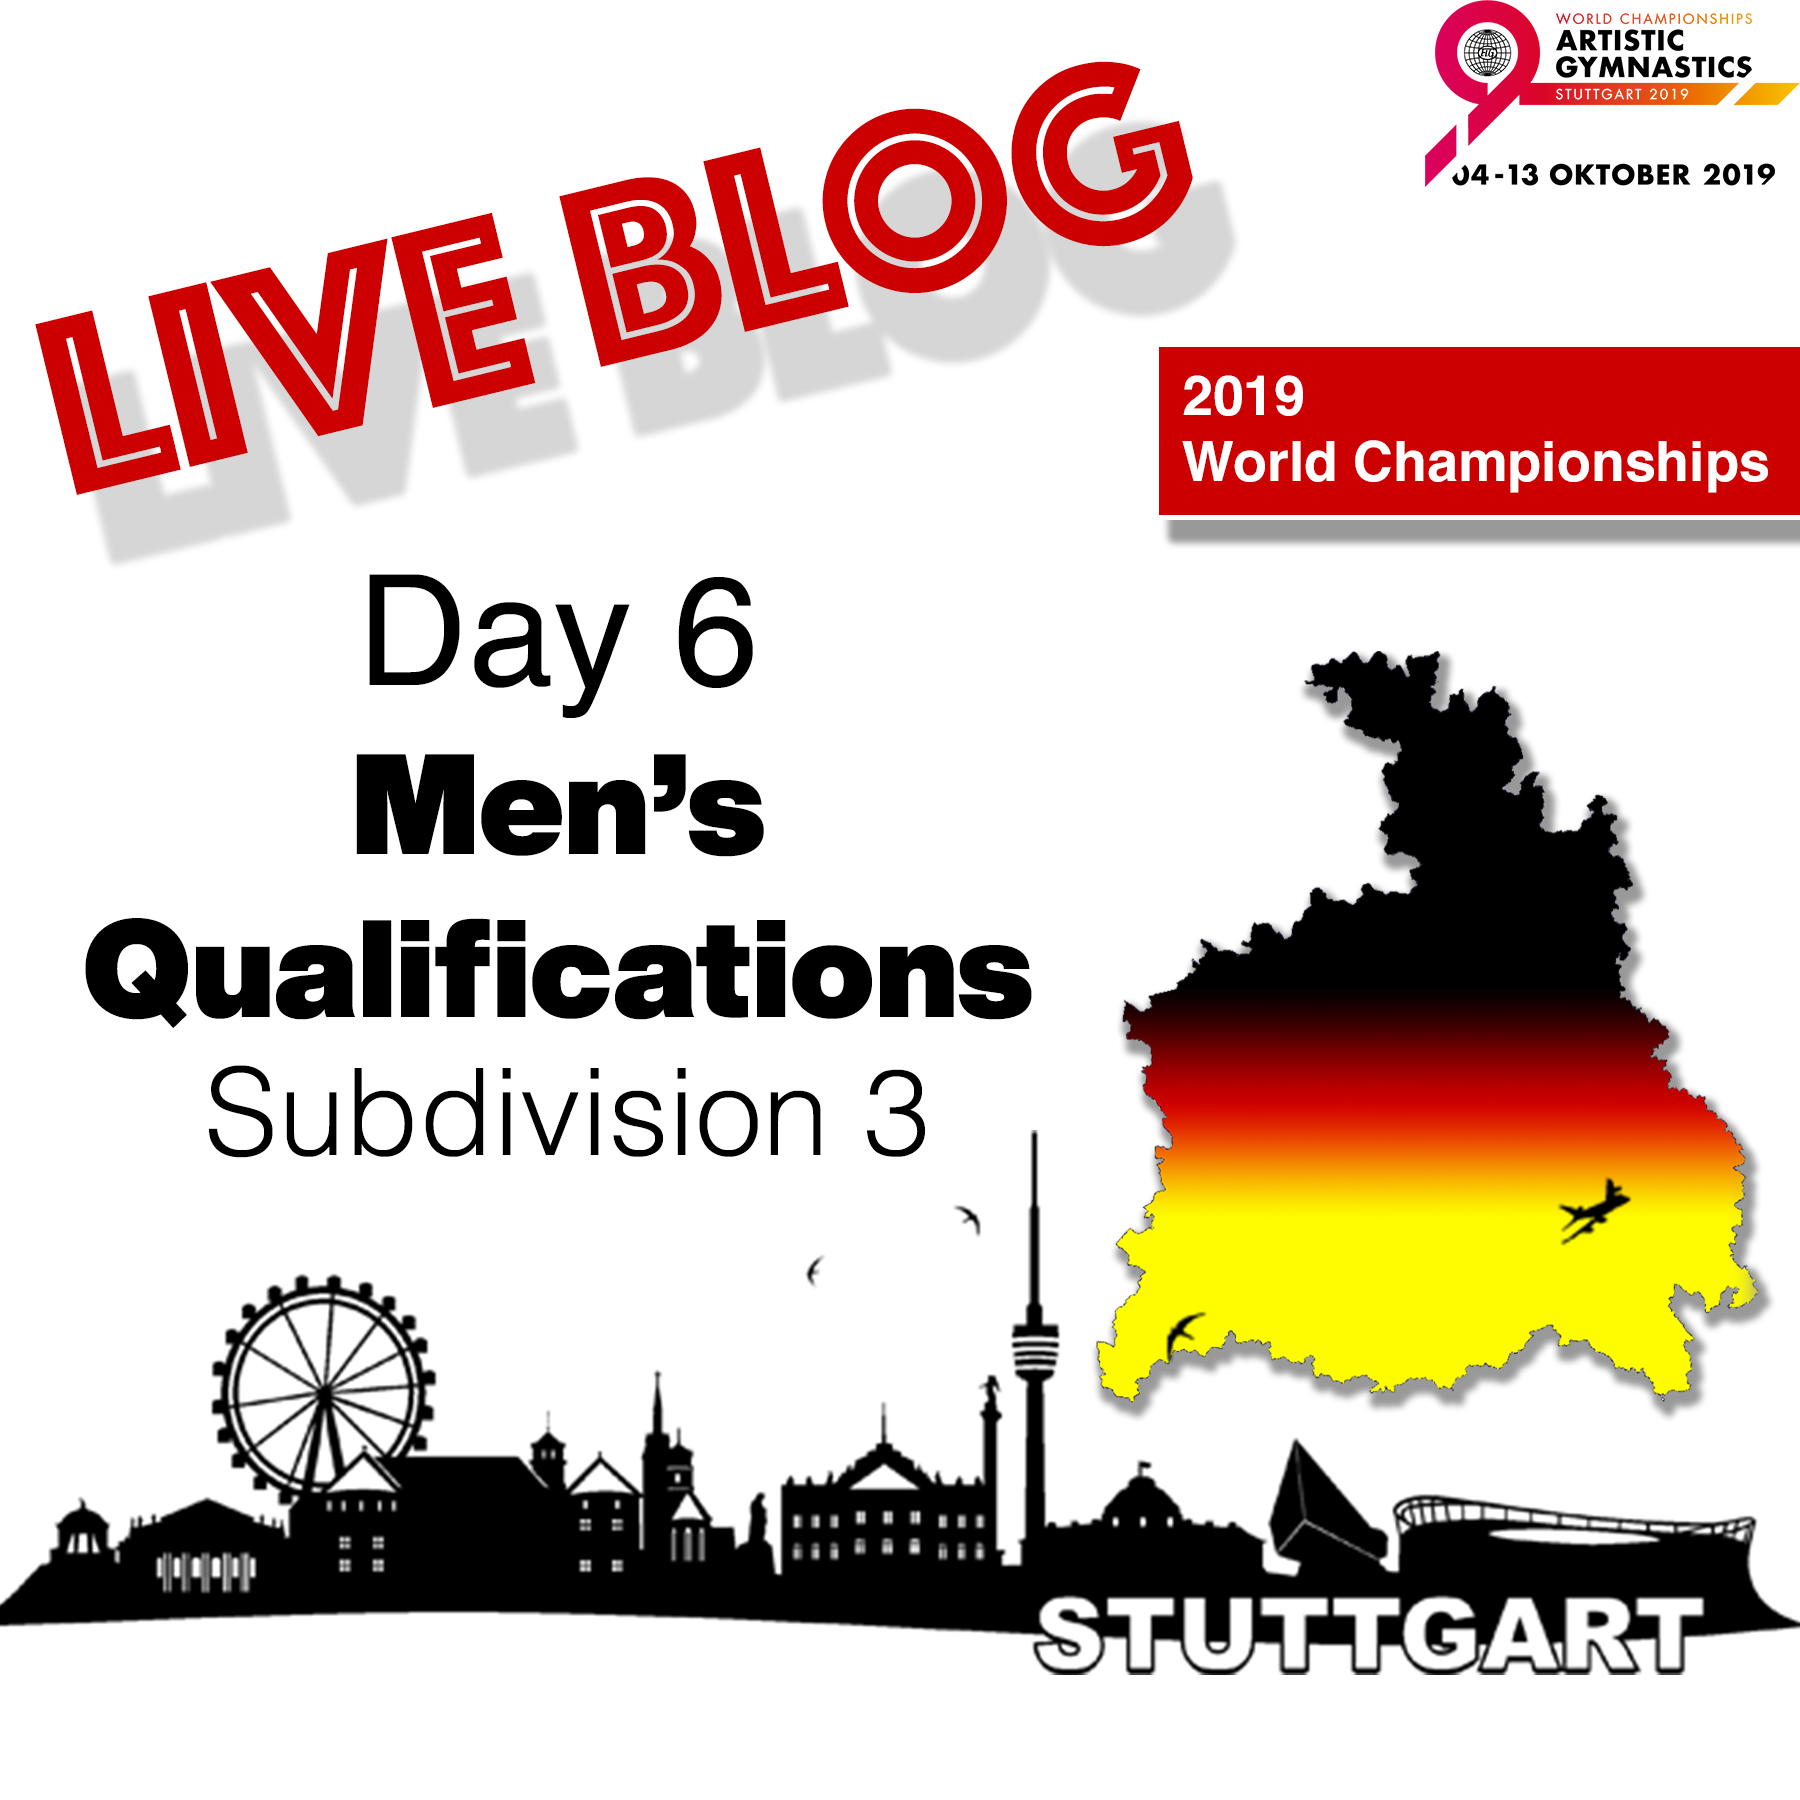 Live Blog: 2019 World Championships – MAG Qualifications – Sub Division 3, Oct. 6th